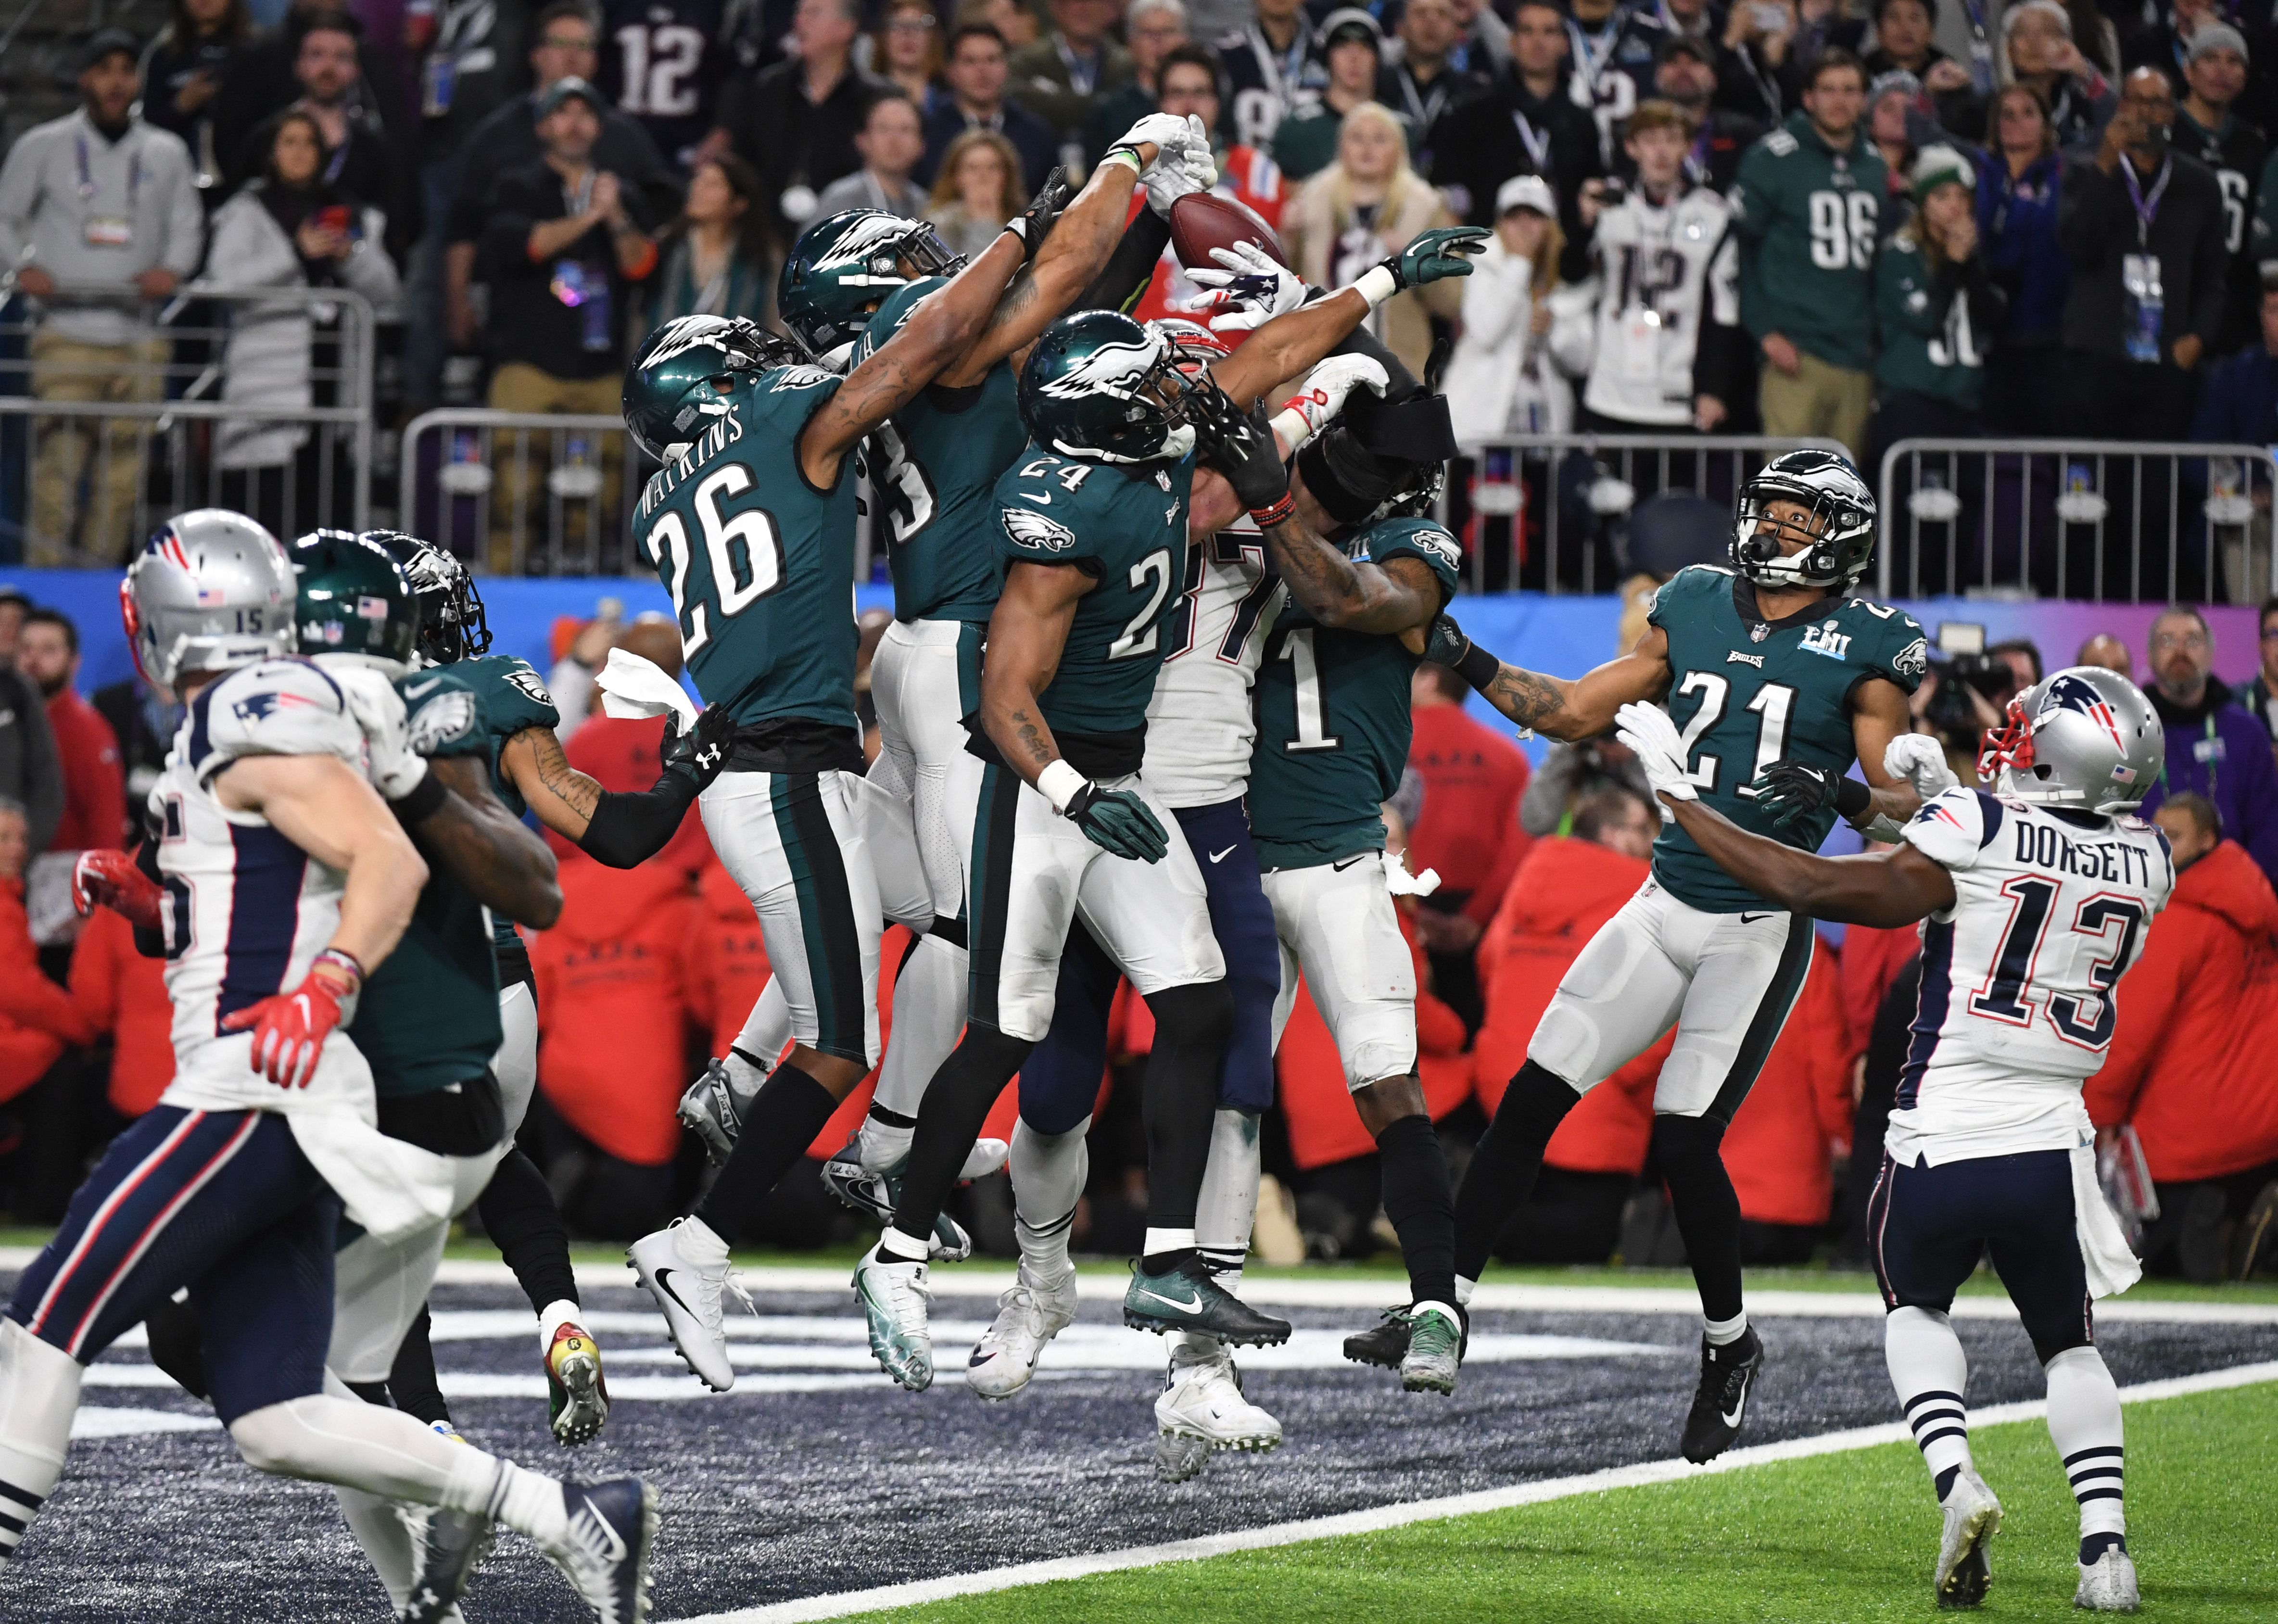 AMFOOT-NFL-SUPERBOWL-EAGLES-PATRIOTS